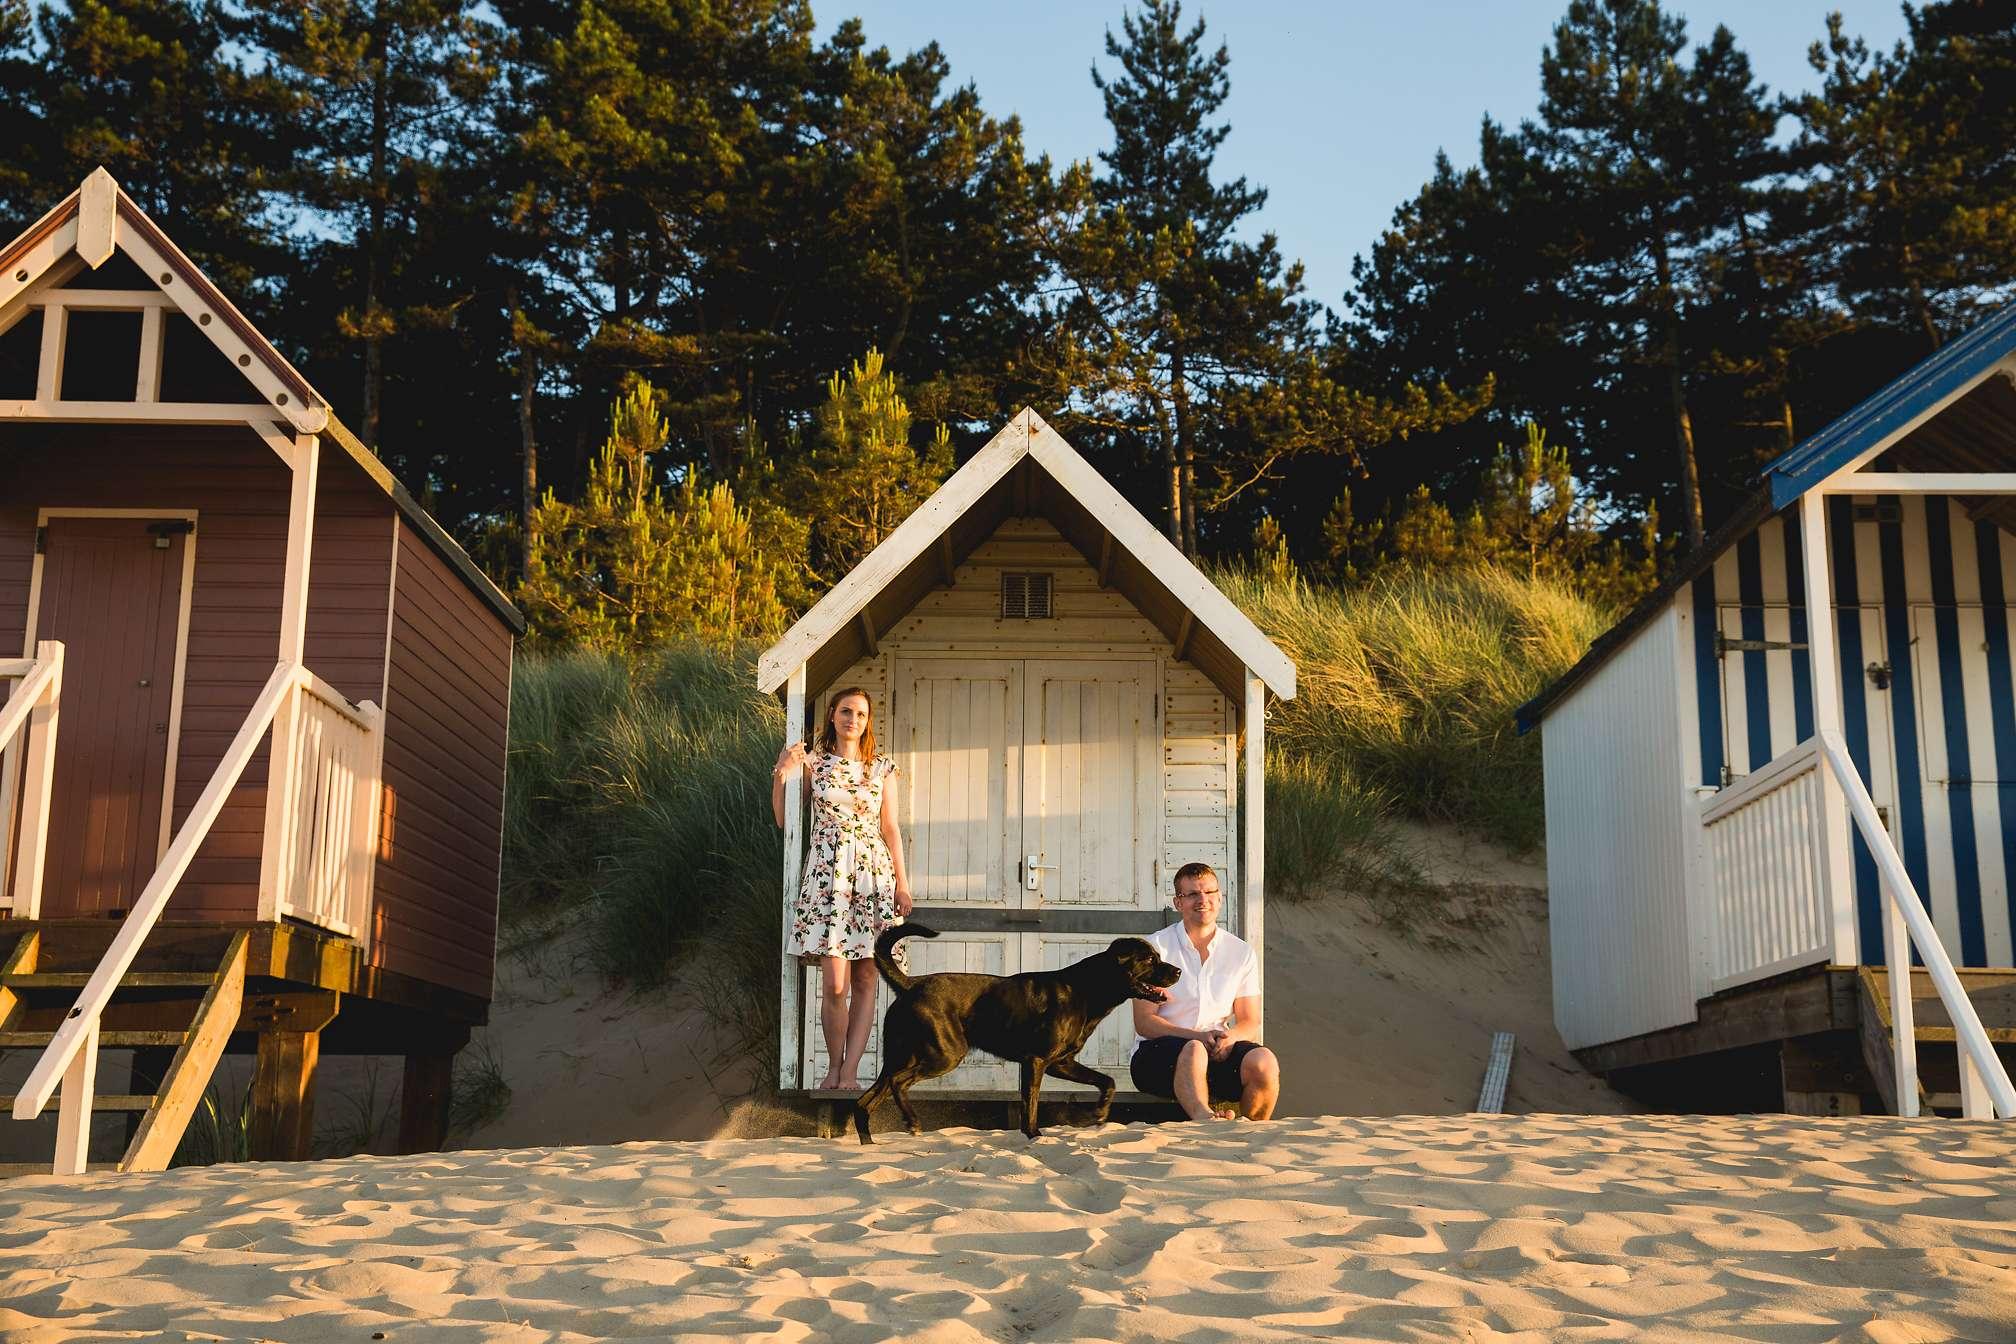 Laura and Tim at the beach huts at Wells-next-the-Sea